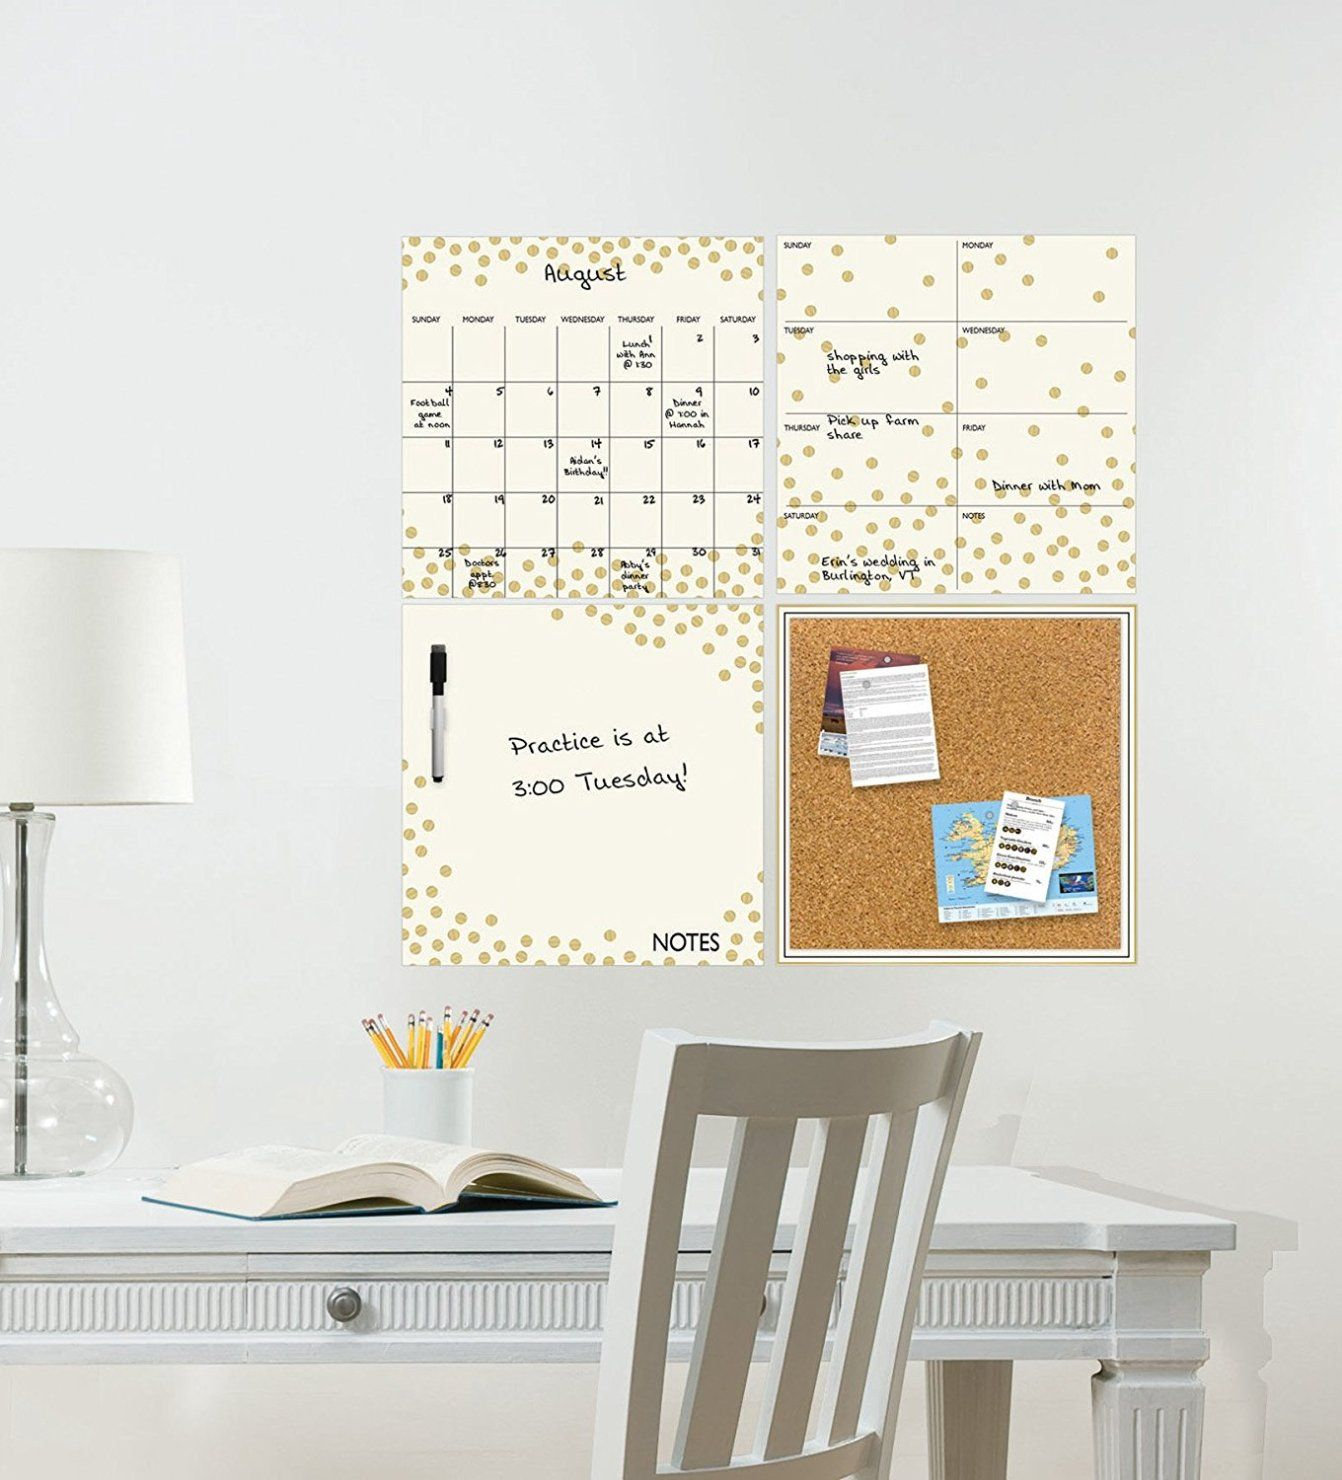 15 Things You Need For Your College Dorm Room